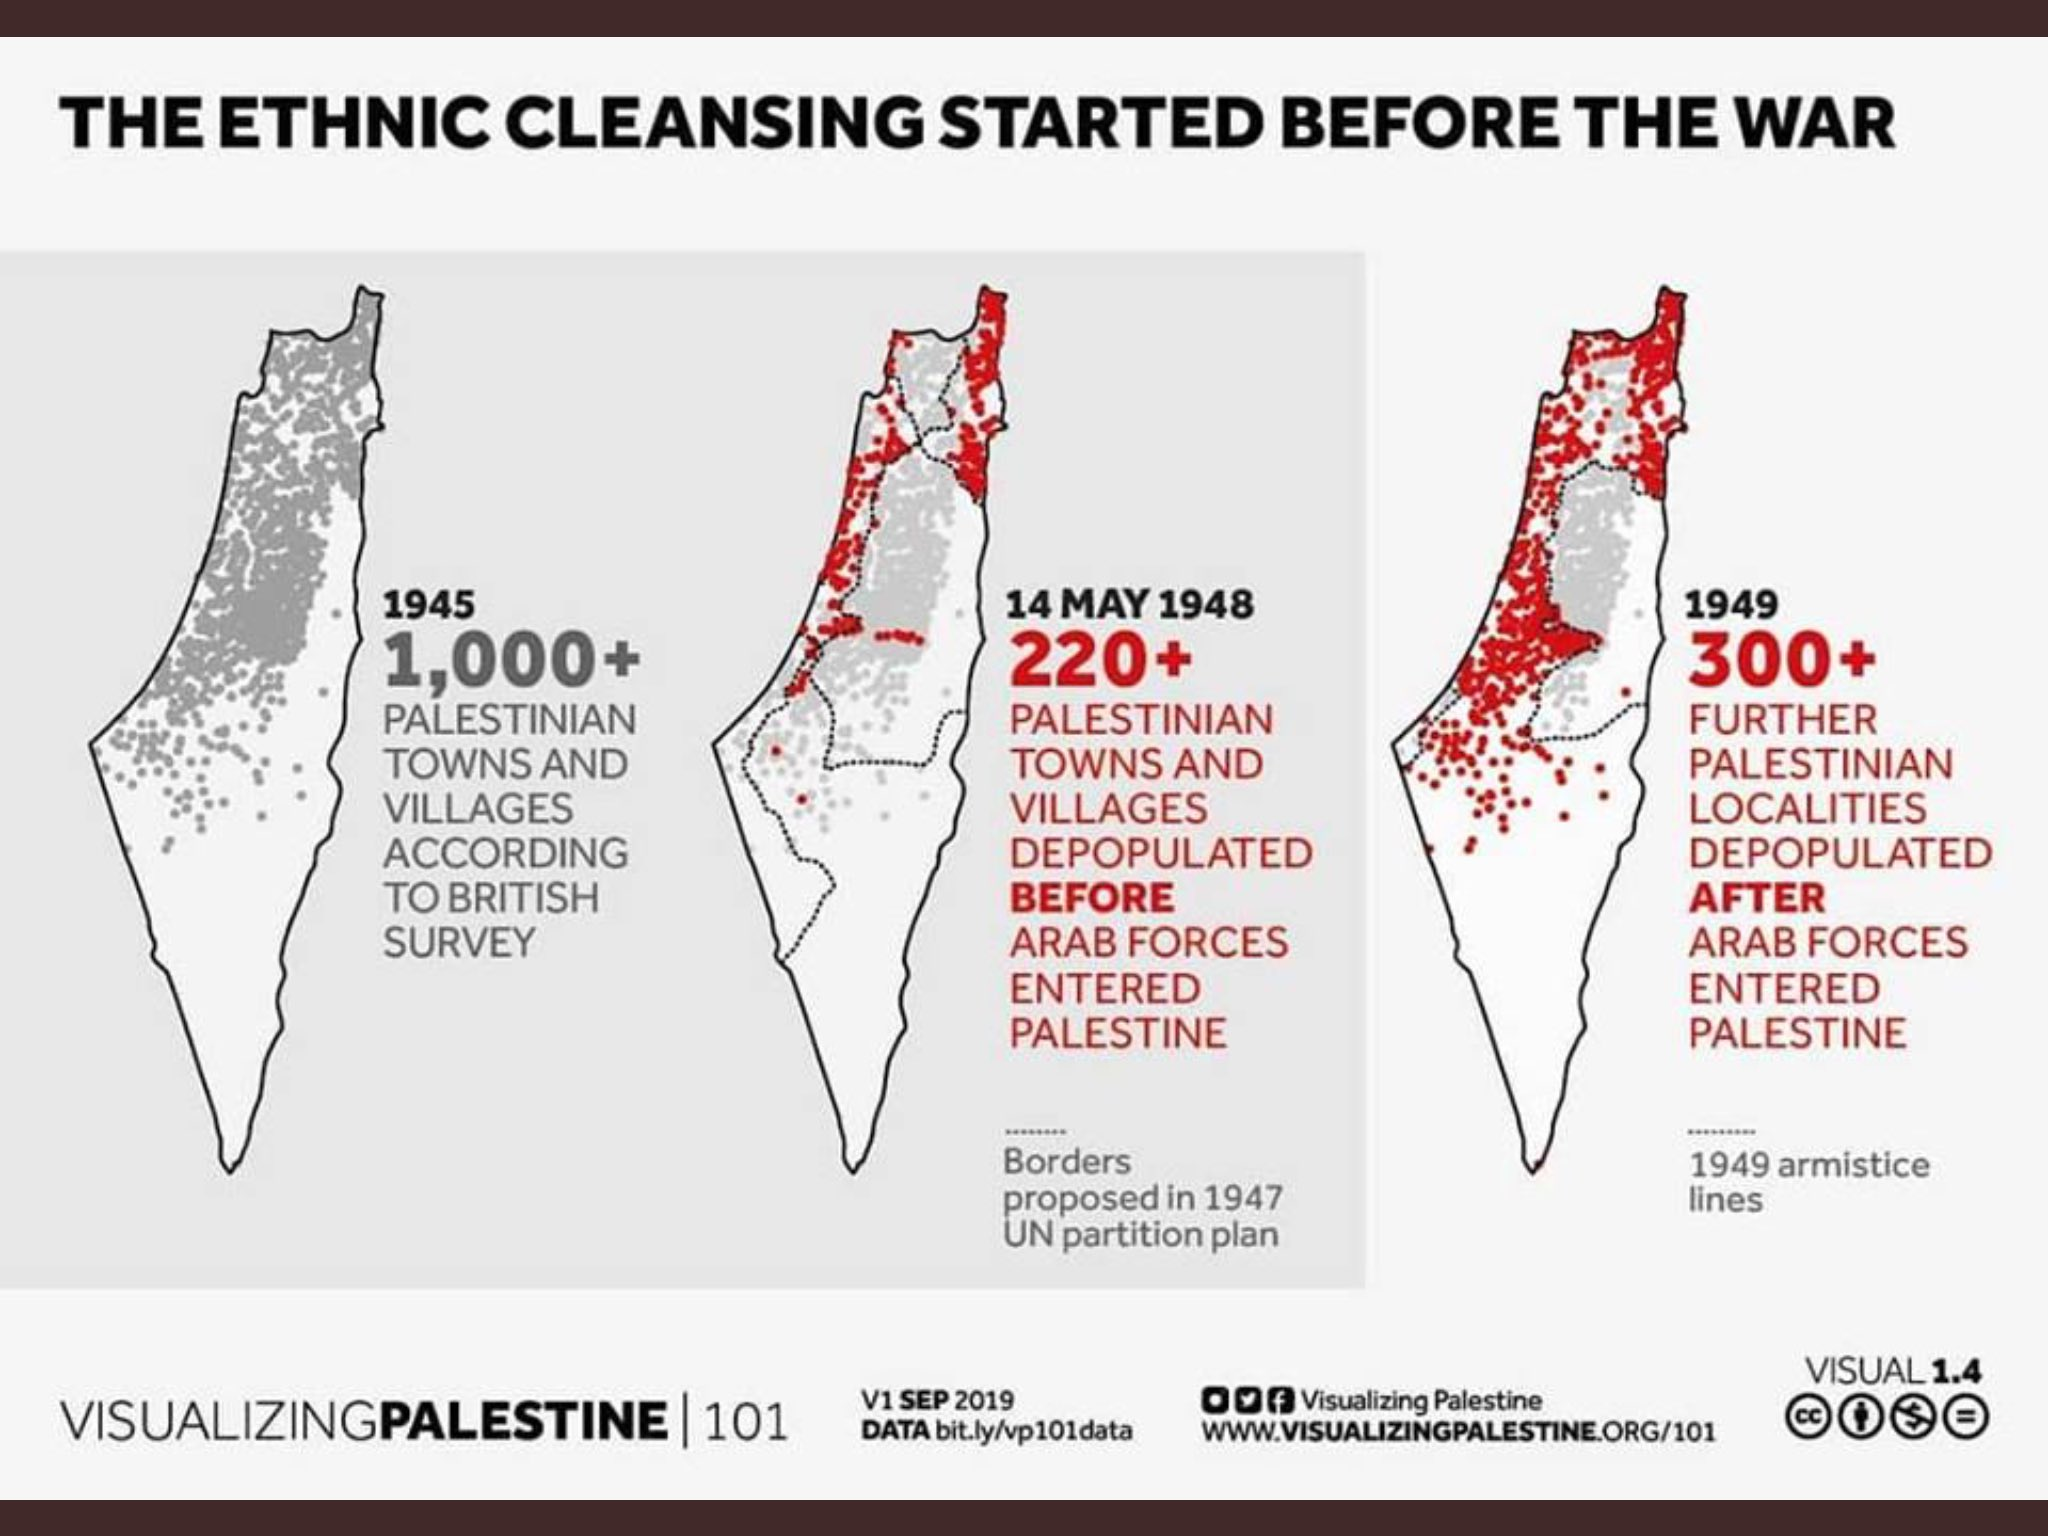 The myth of voluntary flight from Palestine during Nakba. It was a culmination of years of ethnic cleansing processes.   Still the Palestinian refugees are denied a right to return to their homeland. #Palestine #Nakba https://t.co/QJU7eNfNfJ